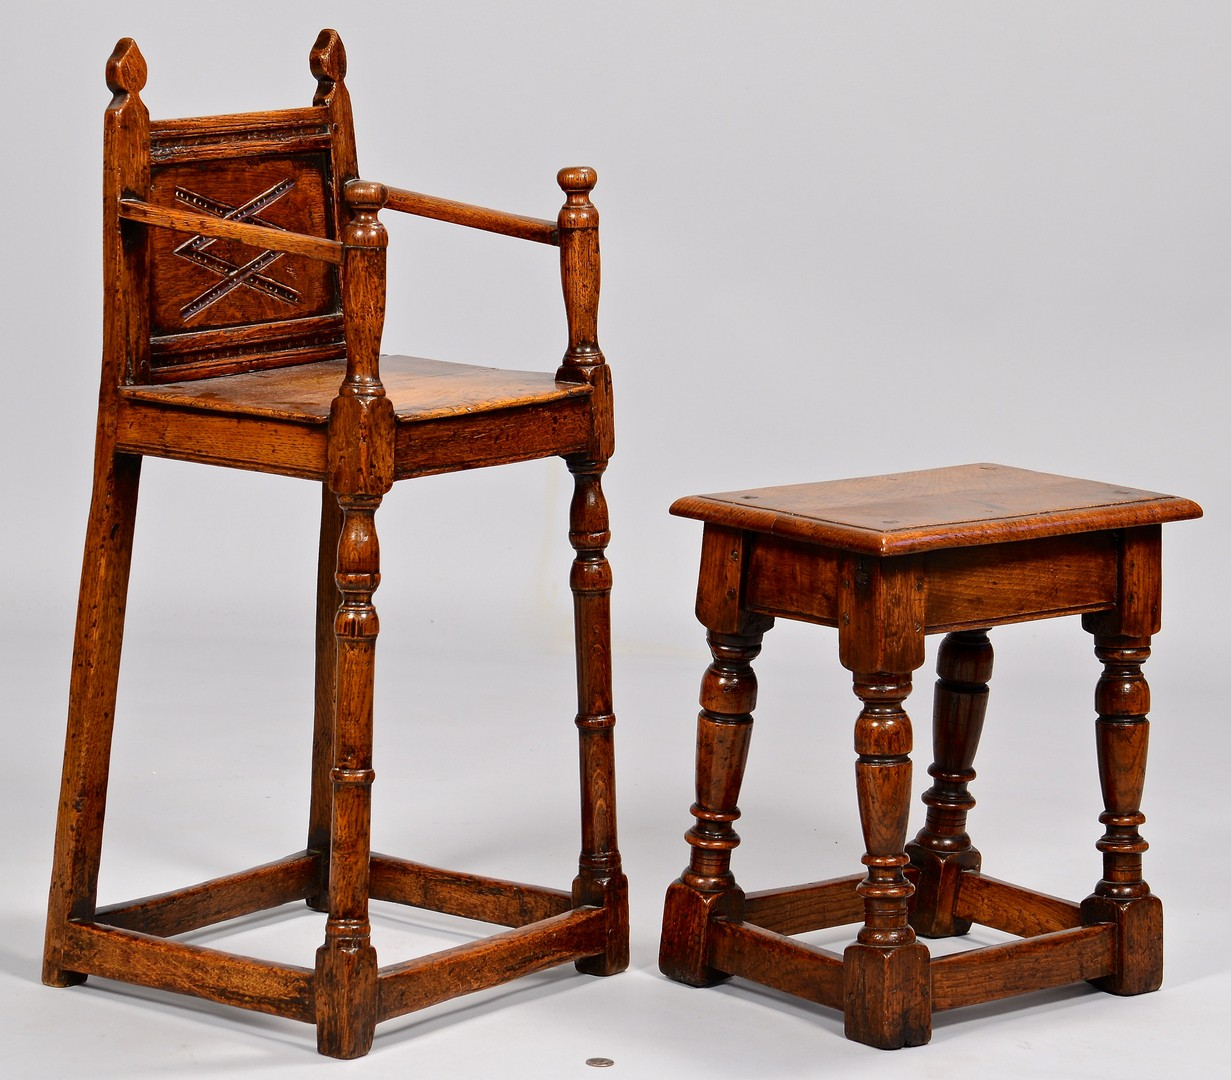 Lot 317: English Jacobean High Chair and small Table/stool